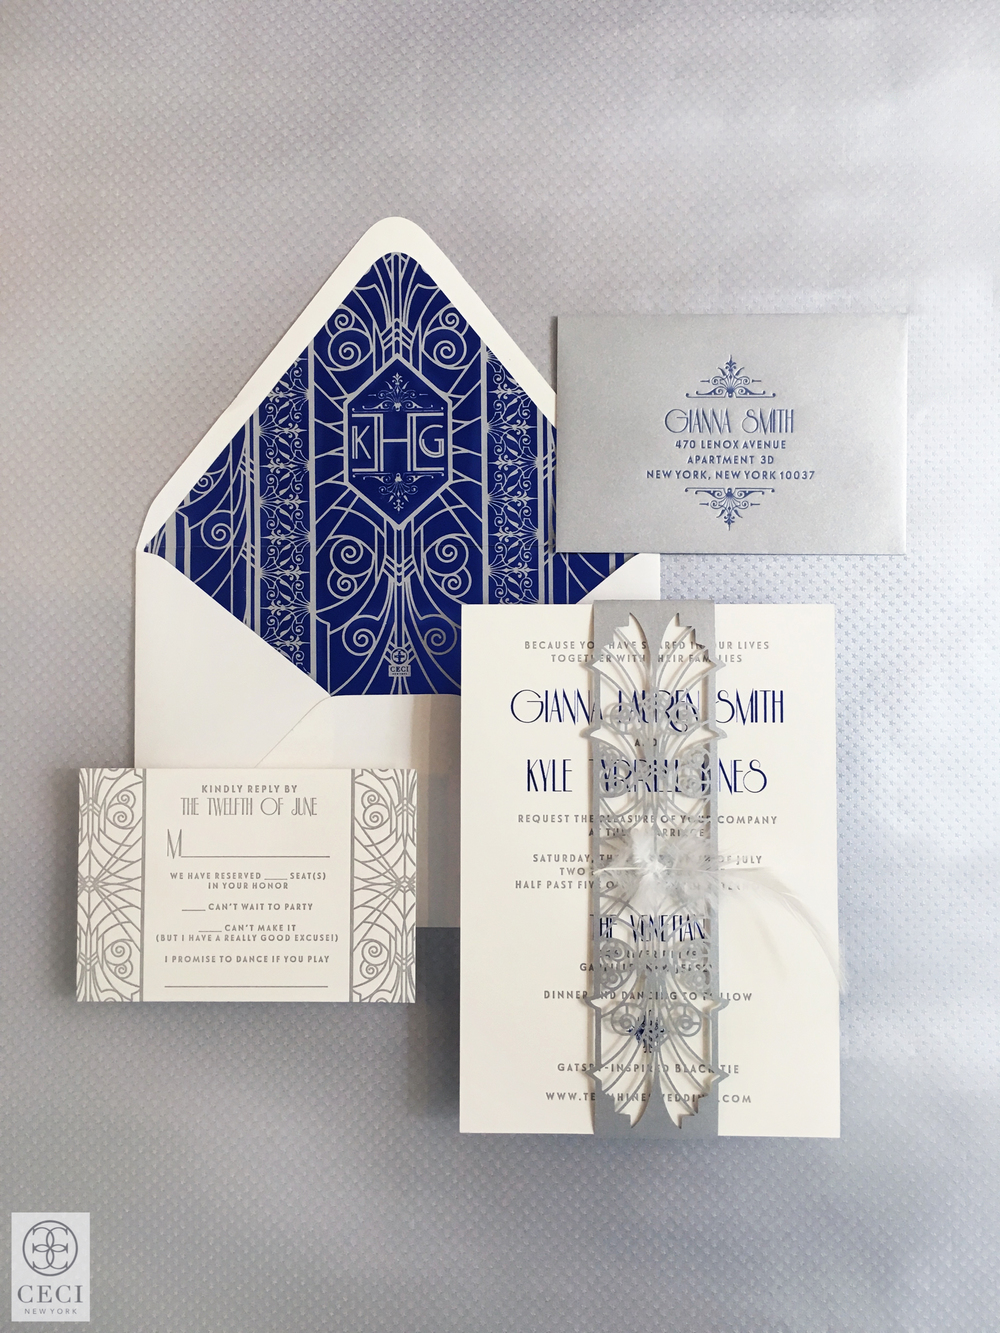 Ceci_New_York_New_Jersey_Invitations_Wedding_New_York_Elegance_Silver_Blue_Letterpress_Deco_Classic_Foil_Stamping_Custom_Couture_Personalized-3.jpg